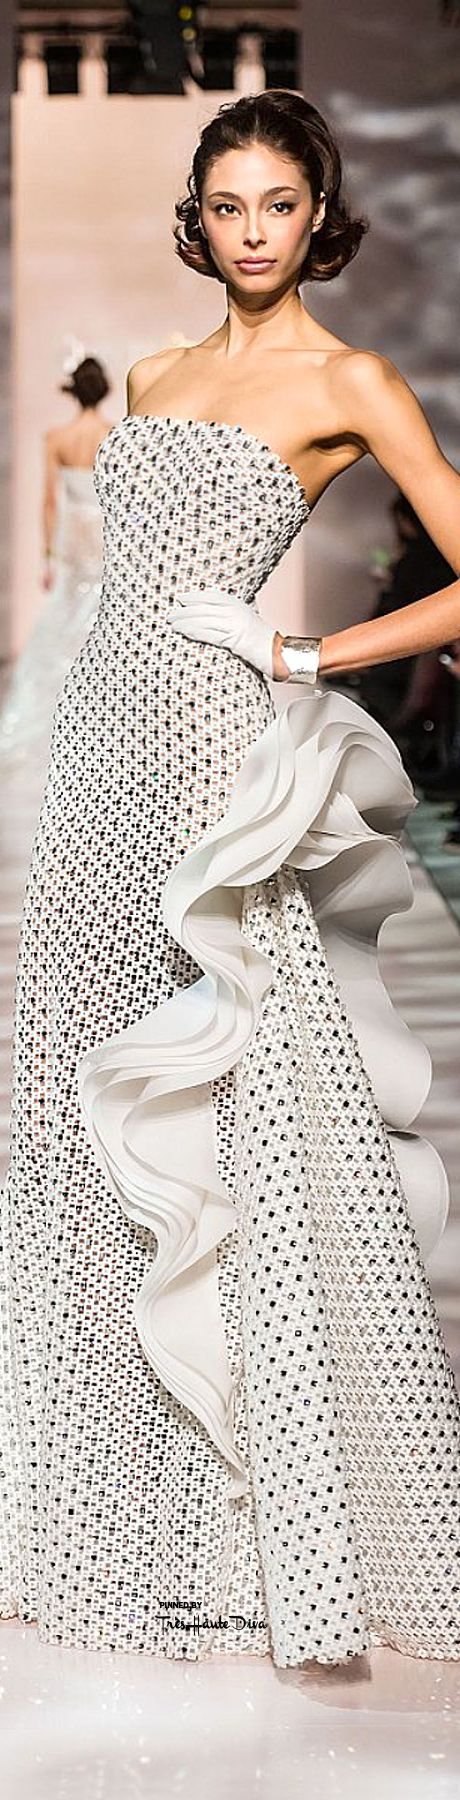 Georges Chakra Spring 2015 Couture ~ More beautiful dresses added daily @ https://www.pinterest.com/tanja62287/couture-dresses/